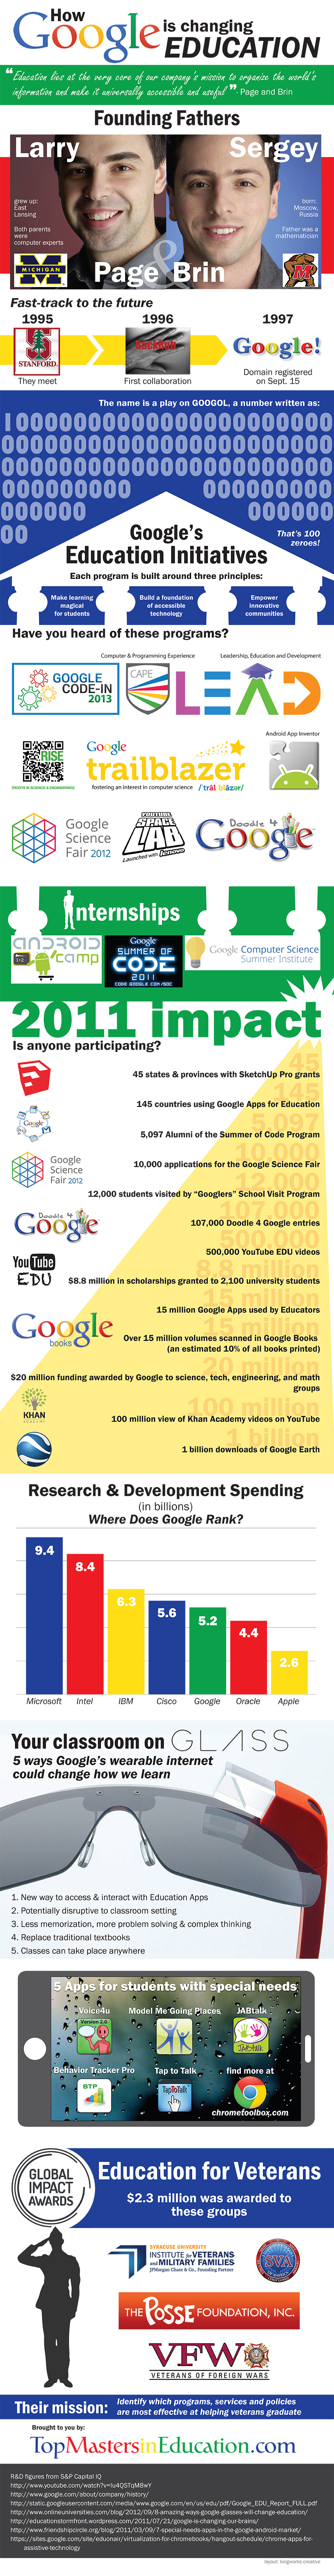 How Google is Changing Education